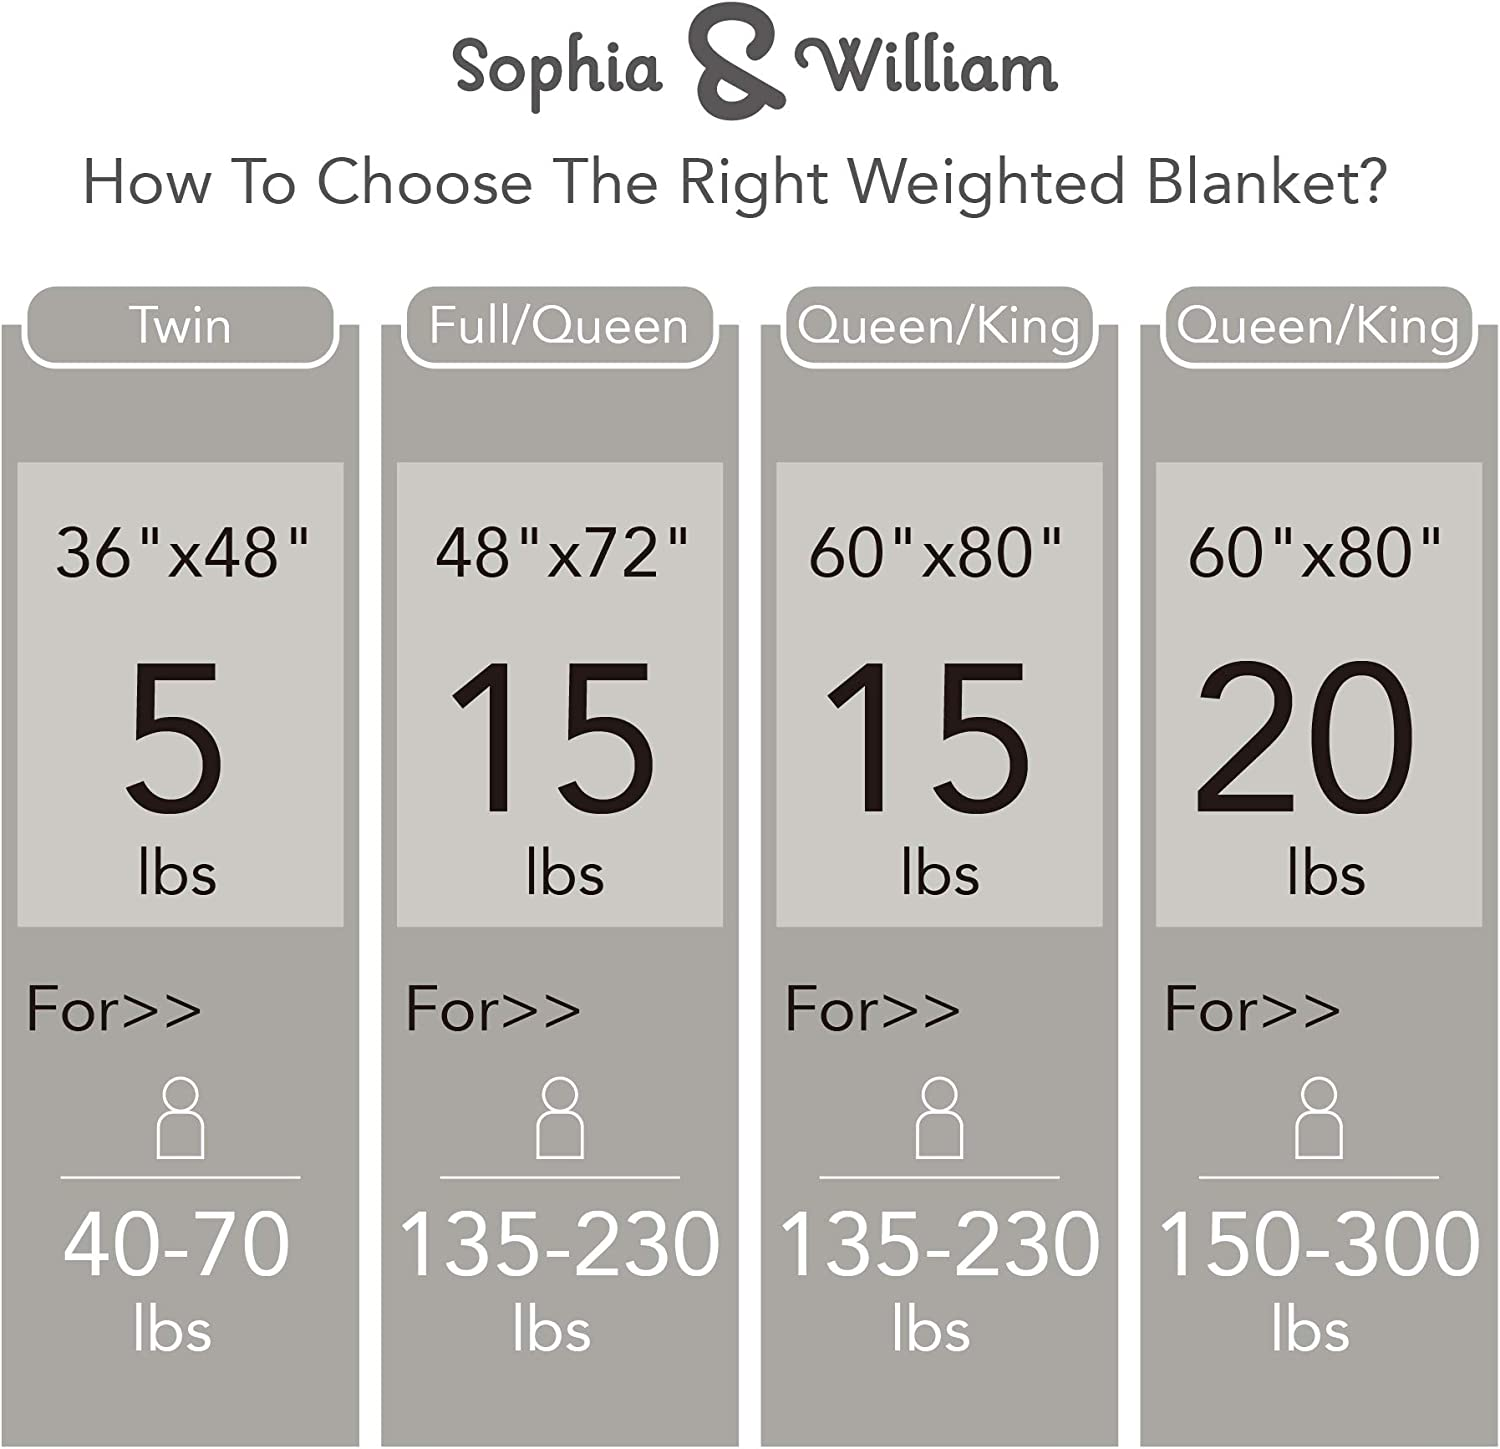 48x72 Cotton Mint Sophia /& William Weighted Blanket for Adult//Kids 15 lbs